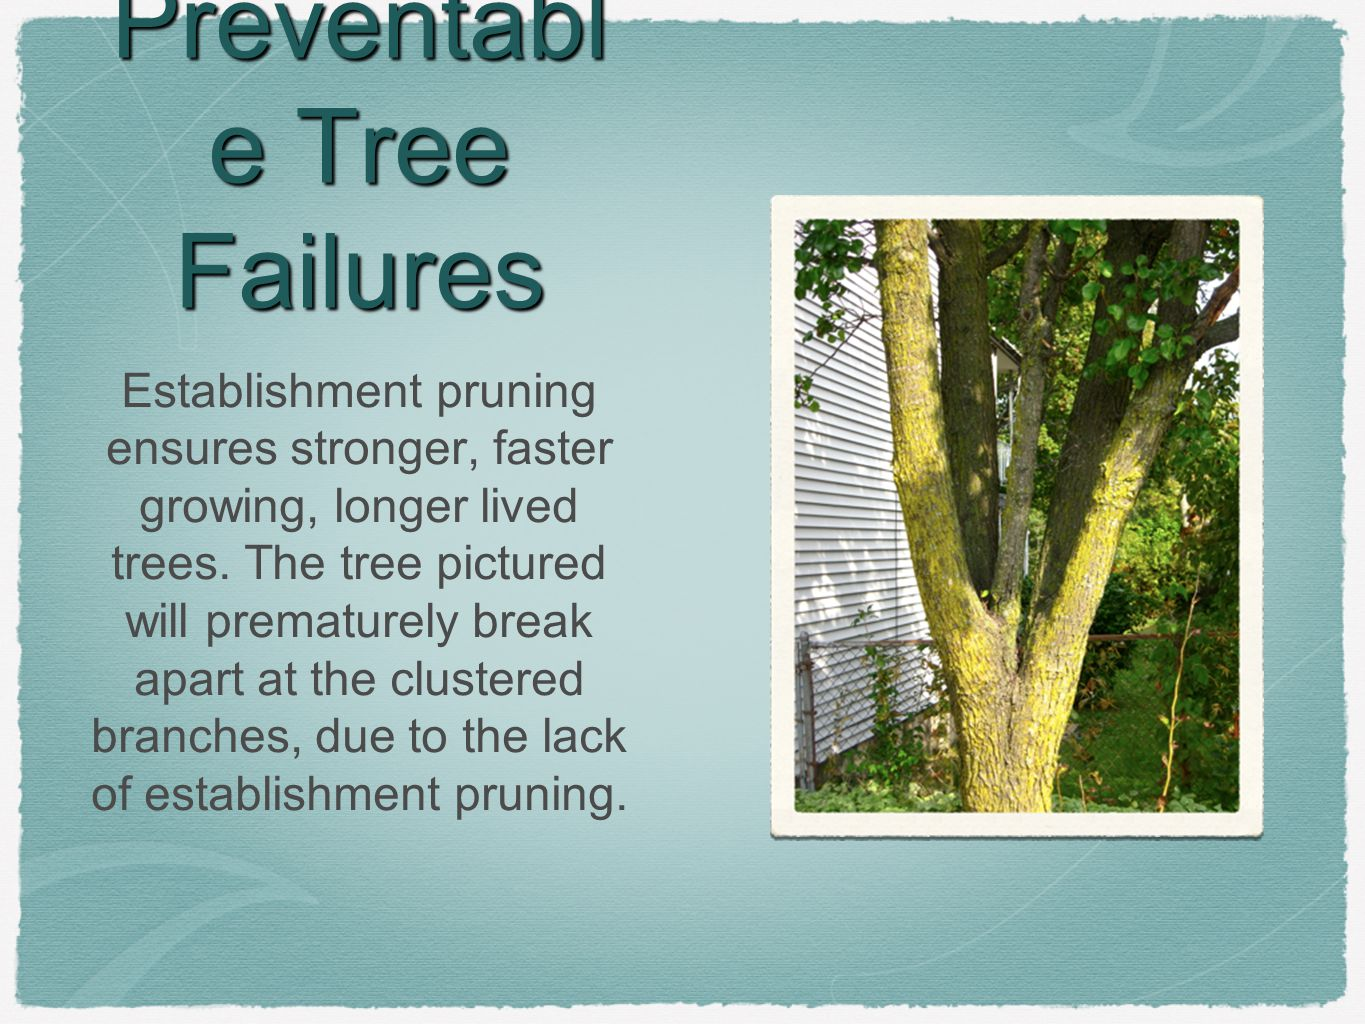 Preventabl e Tree Failures Establishment pruning ensures stronger, faster growing, longer lived trees.